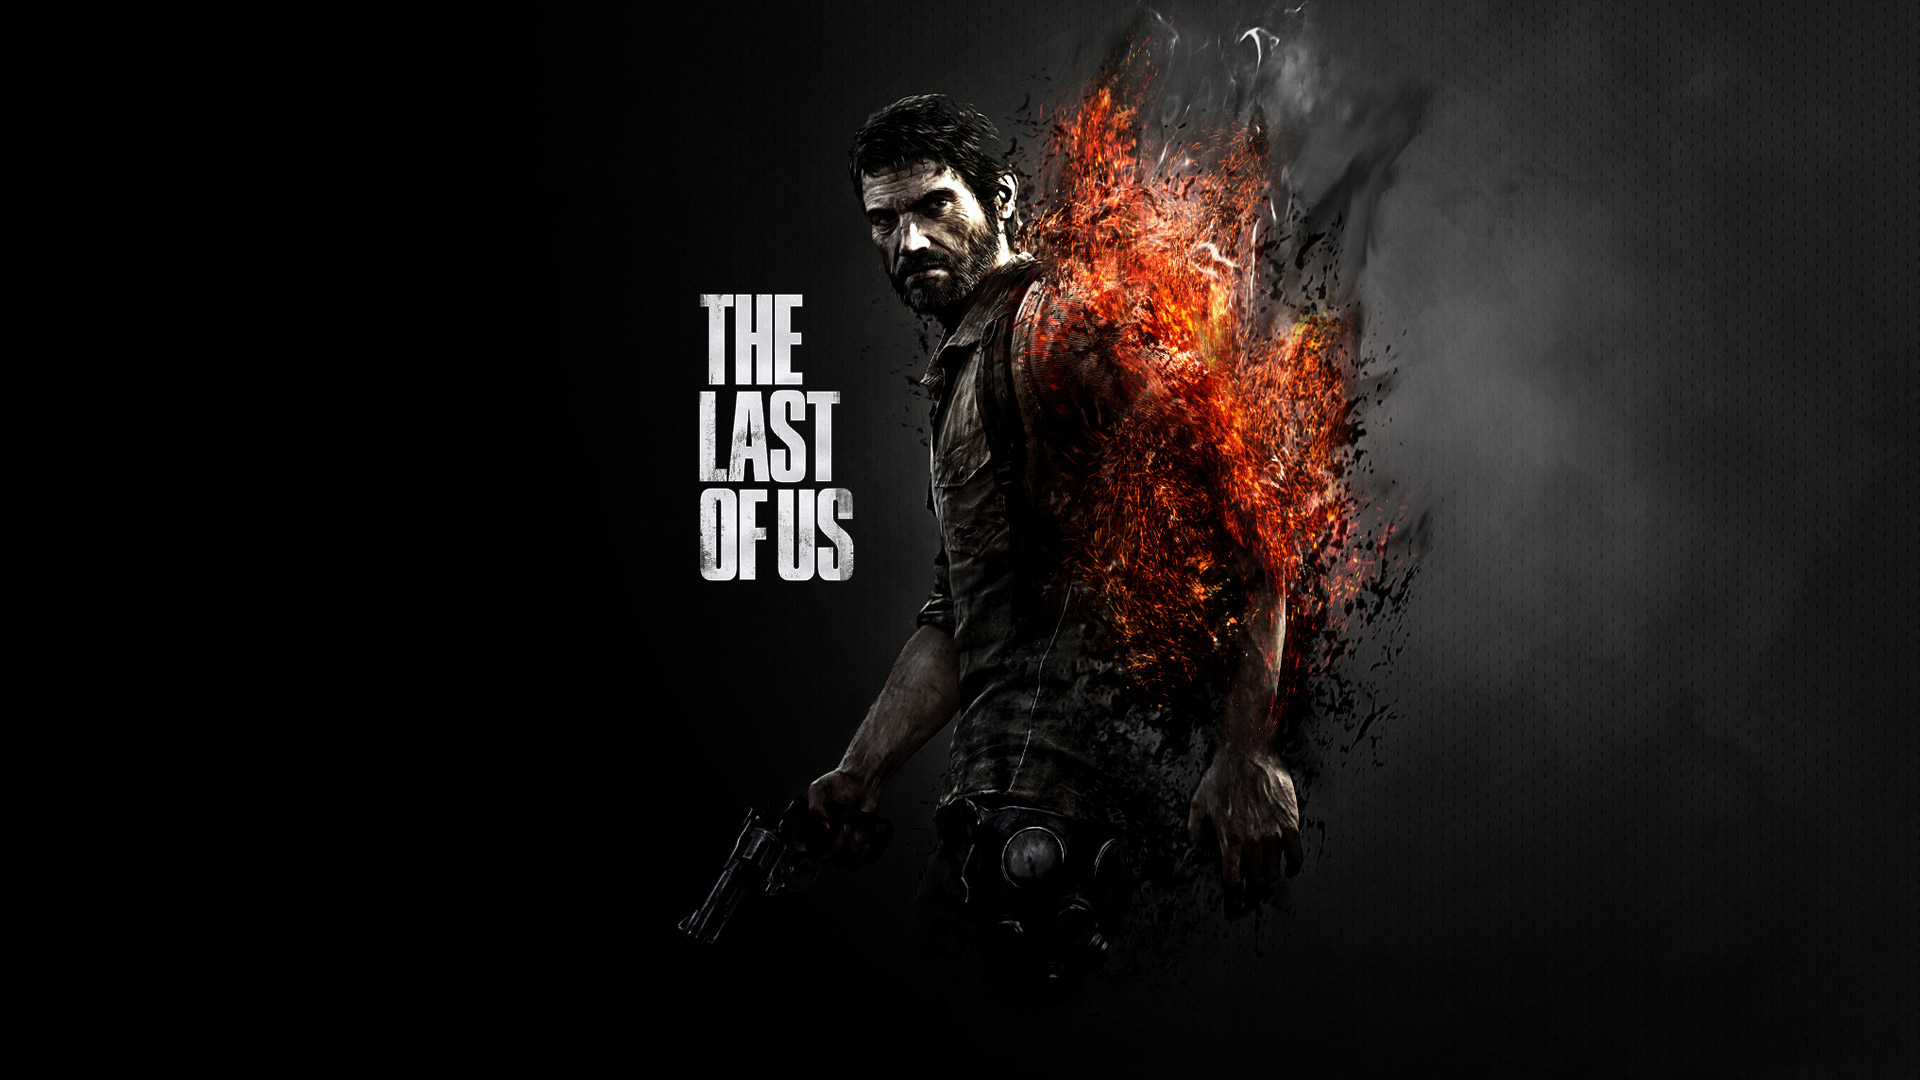 The Last Of Us Wallpaper Top HDQ The Last Of Us Images 1920x1080